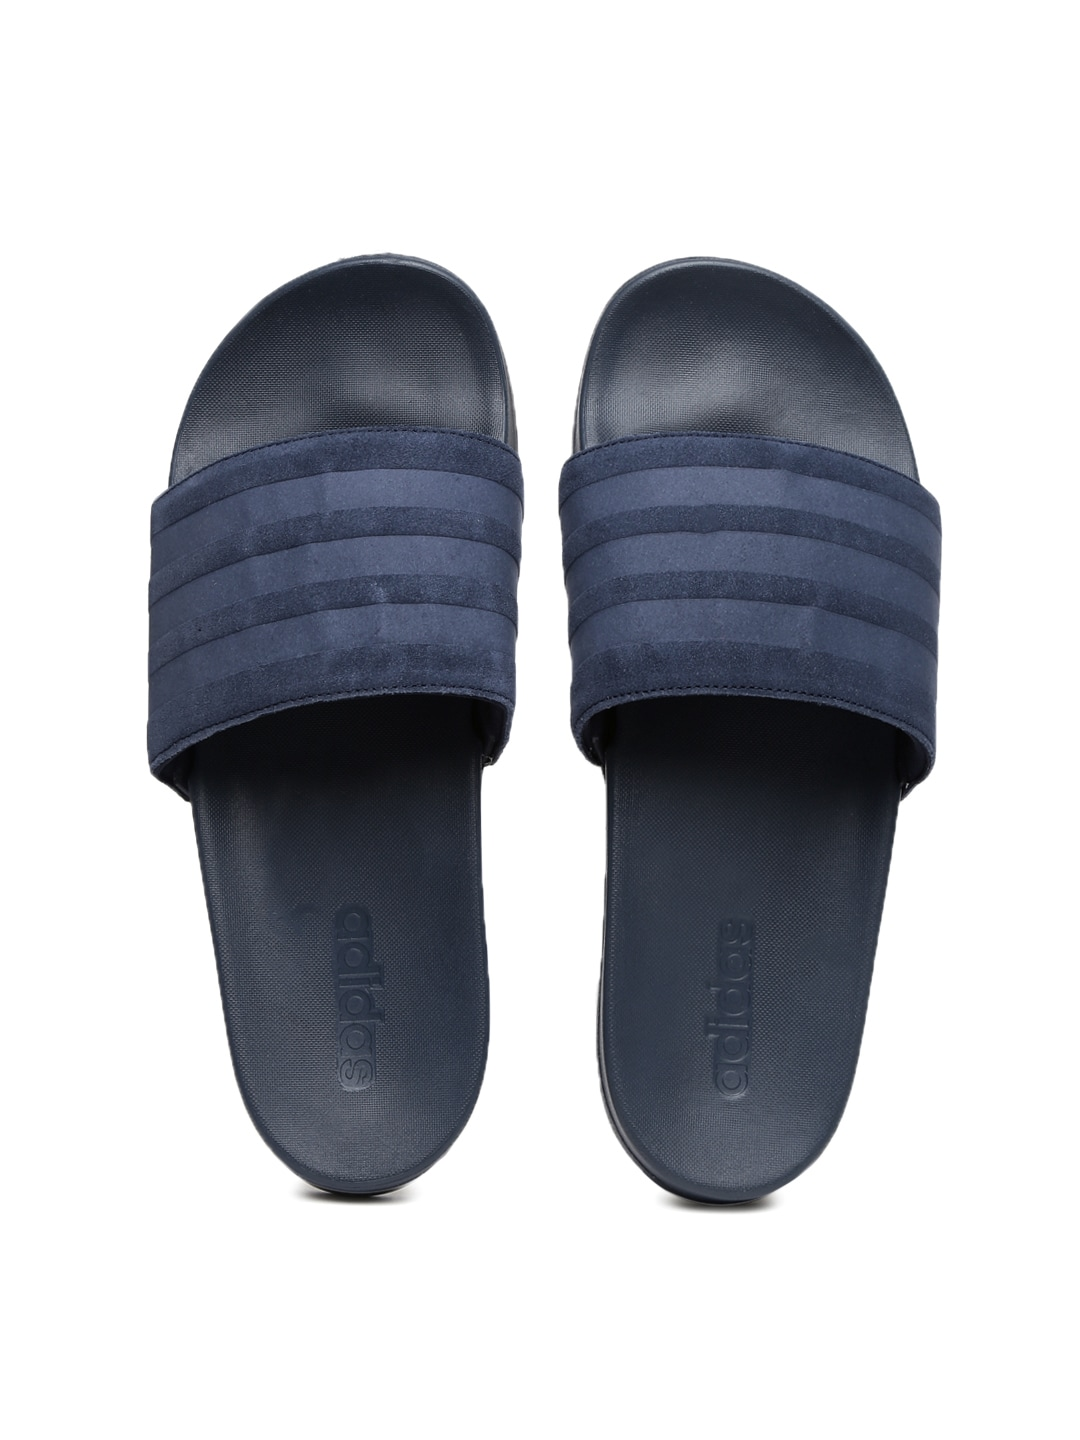 wholesale dealer a080a c1914 Adidas aq5050 Men Navy Blue Adilette Cf Ultra Explorer Sandals- Price in  India